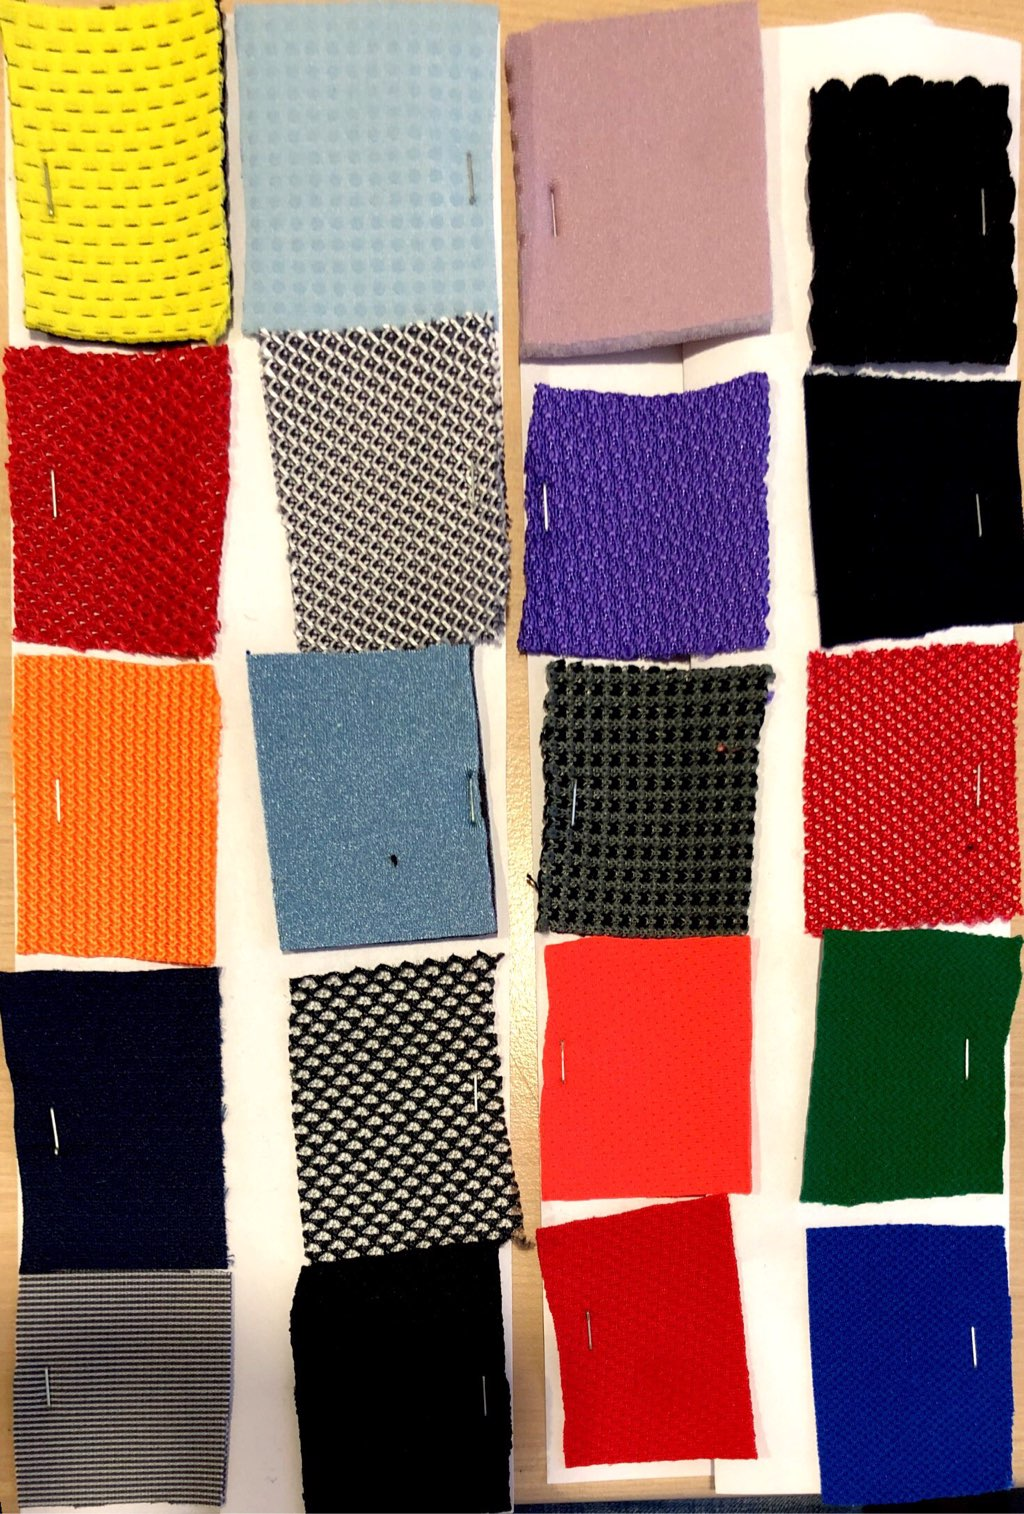 shoes  fabric roll 4707